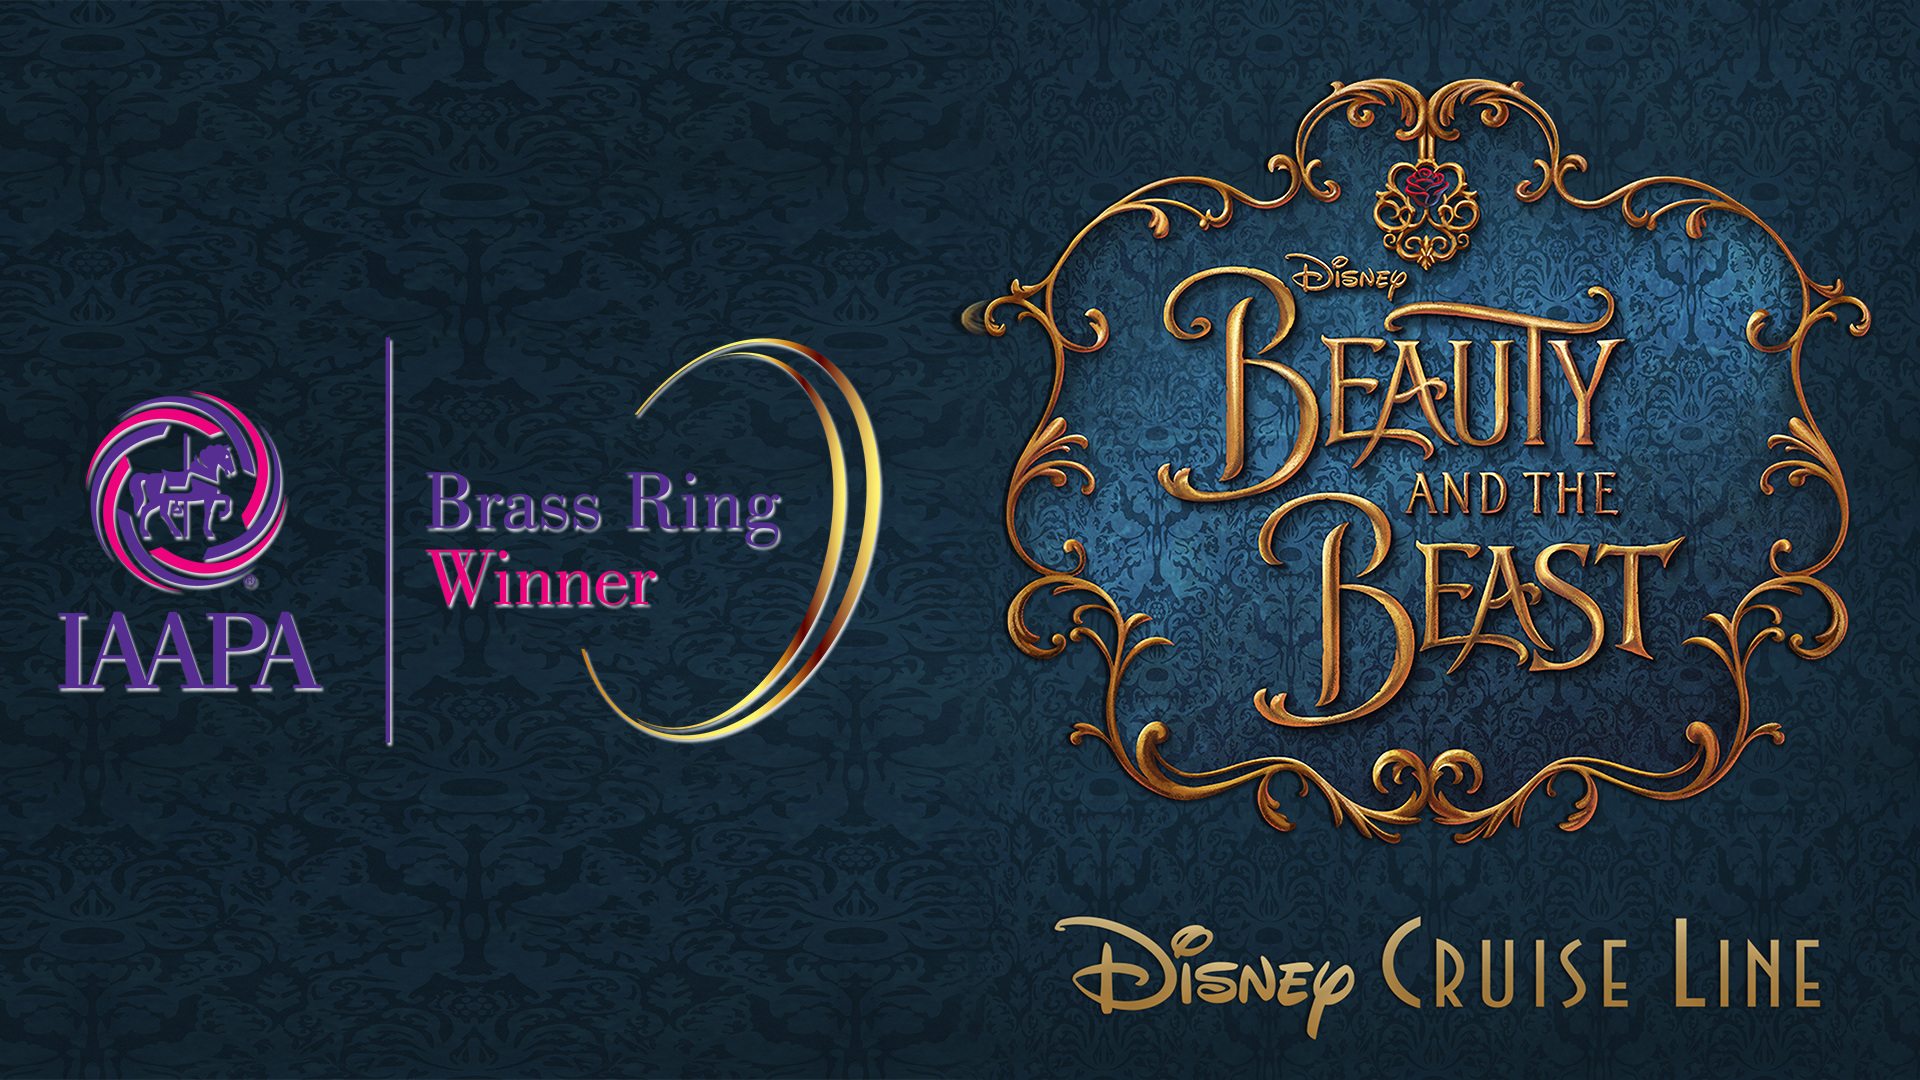 8356b1342 IAAPA Awards Disney Parks Live Entertainment a Brass Ring Award for Disney  Cruise Line's Beauty and the Beast • The Disney Cruise Line Blog